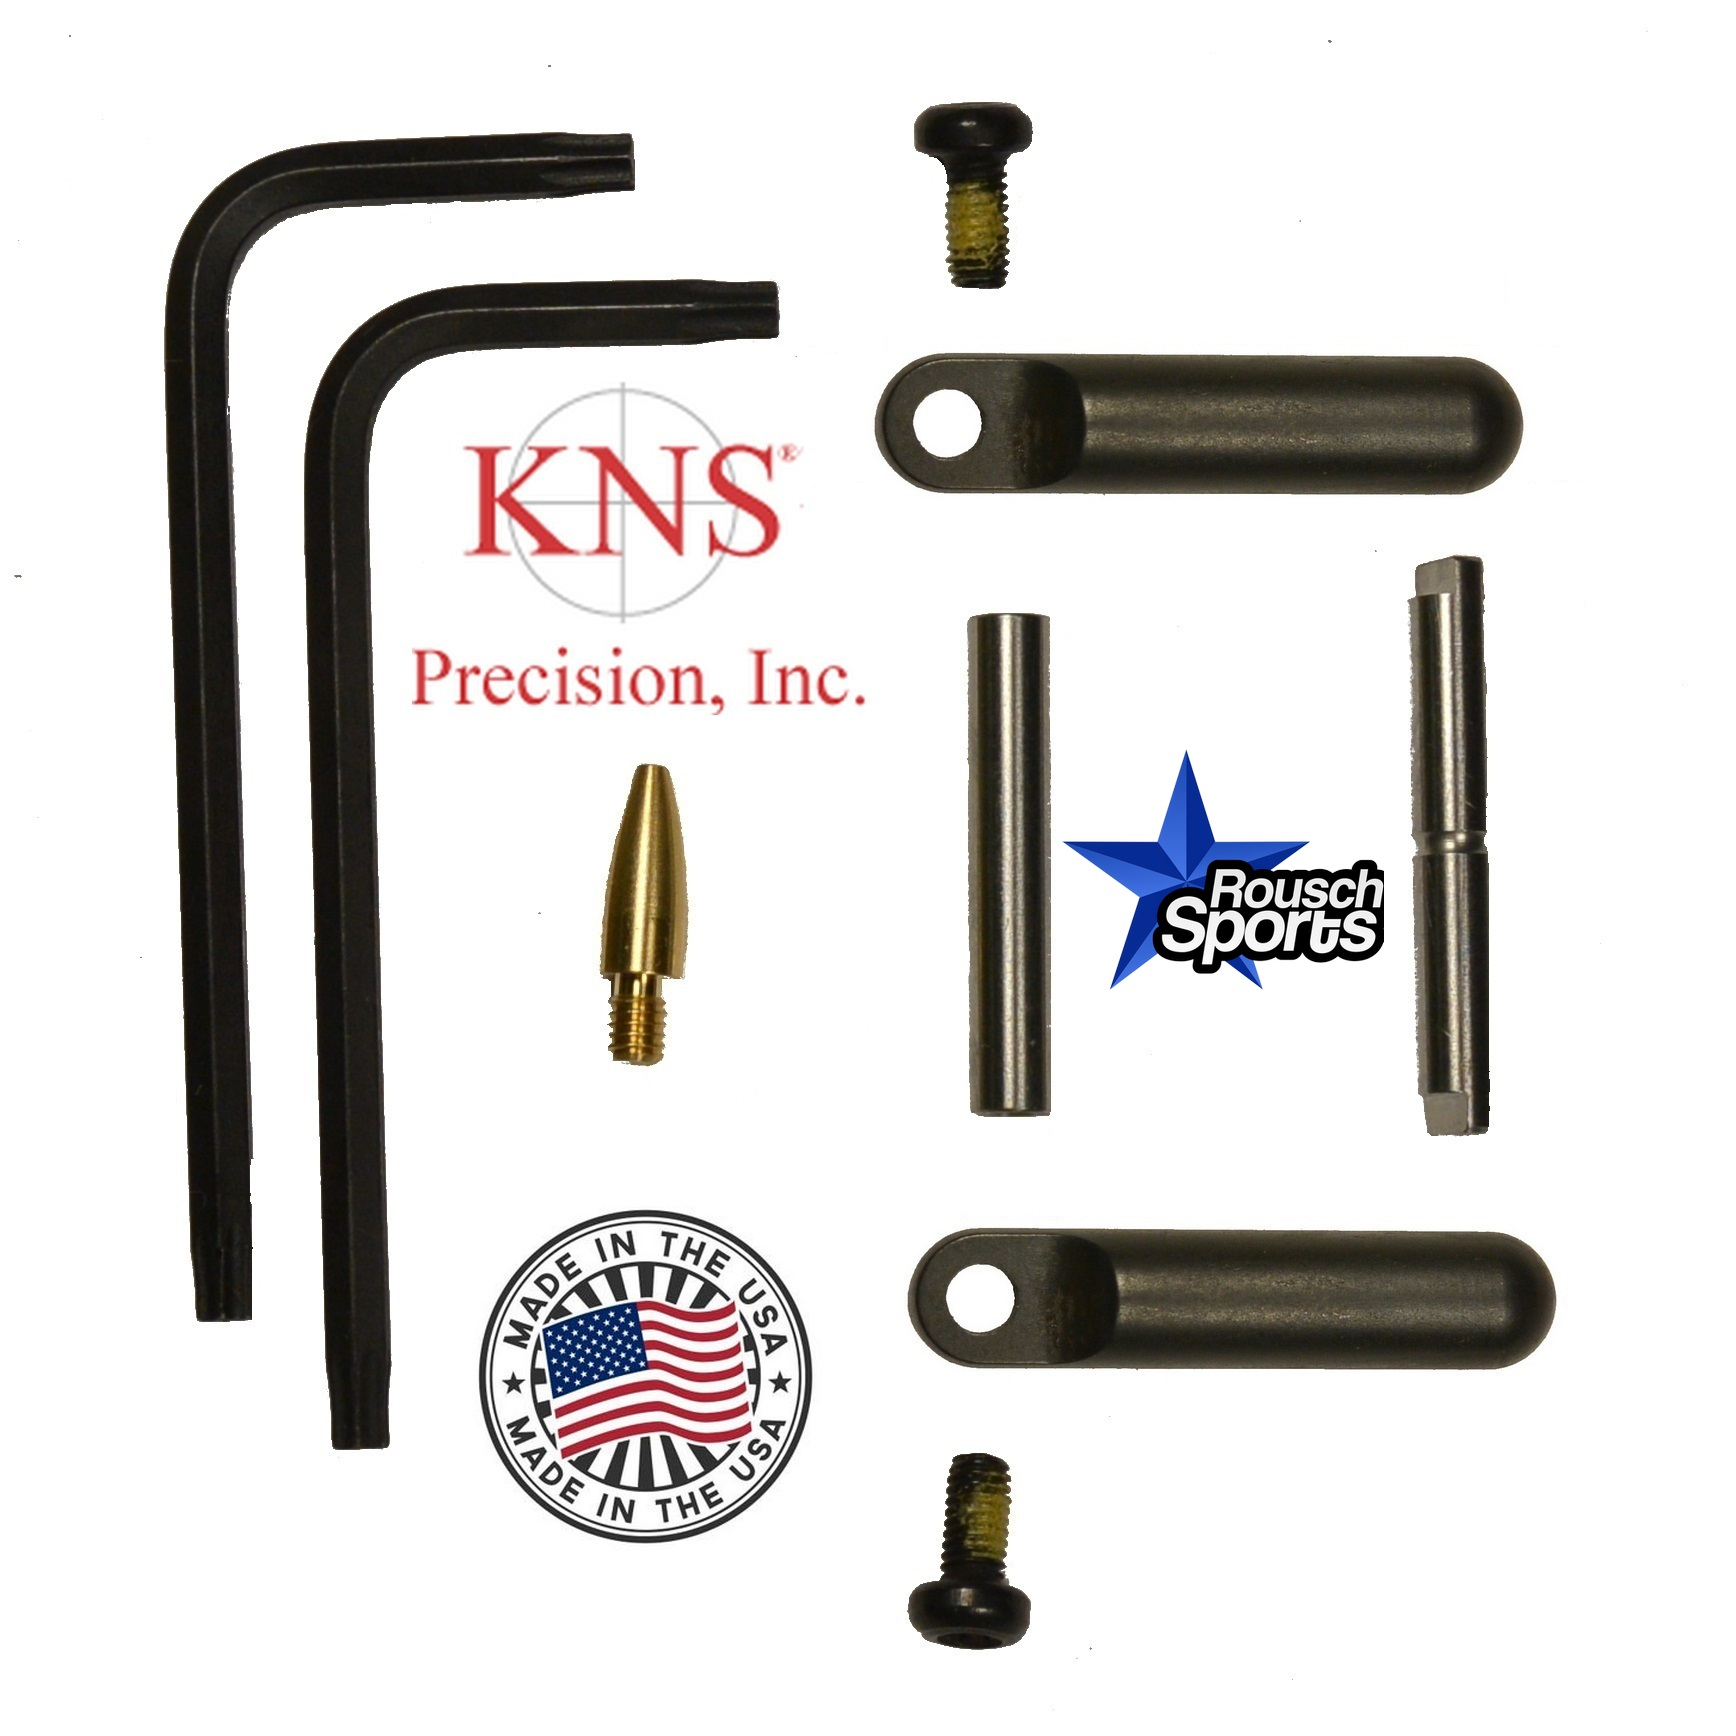 KNS Pins Anti Walk Pins Non-Rotating Gen Northrop Side Plates BLACK .223 5.56 .308 AR 15 M4 M16 Best Discount Wholesale AR Parts and Accessories Austin Texas 1 .223 5.56 .308 AR 15 M4 M16 Best Discount Wholesale AR Parts and Accessories Austin Texas Stainless Steel